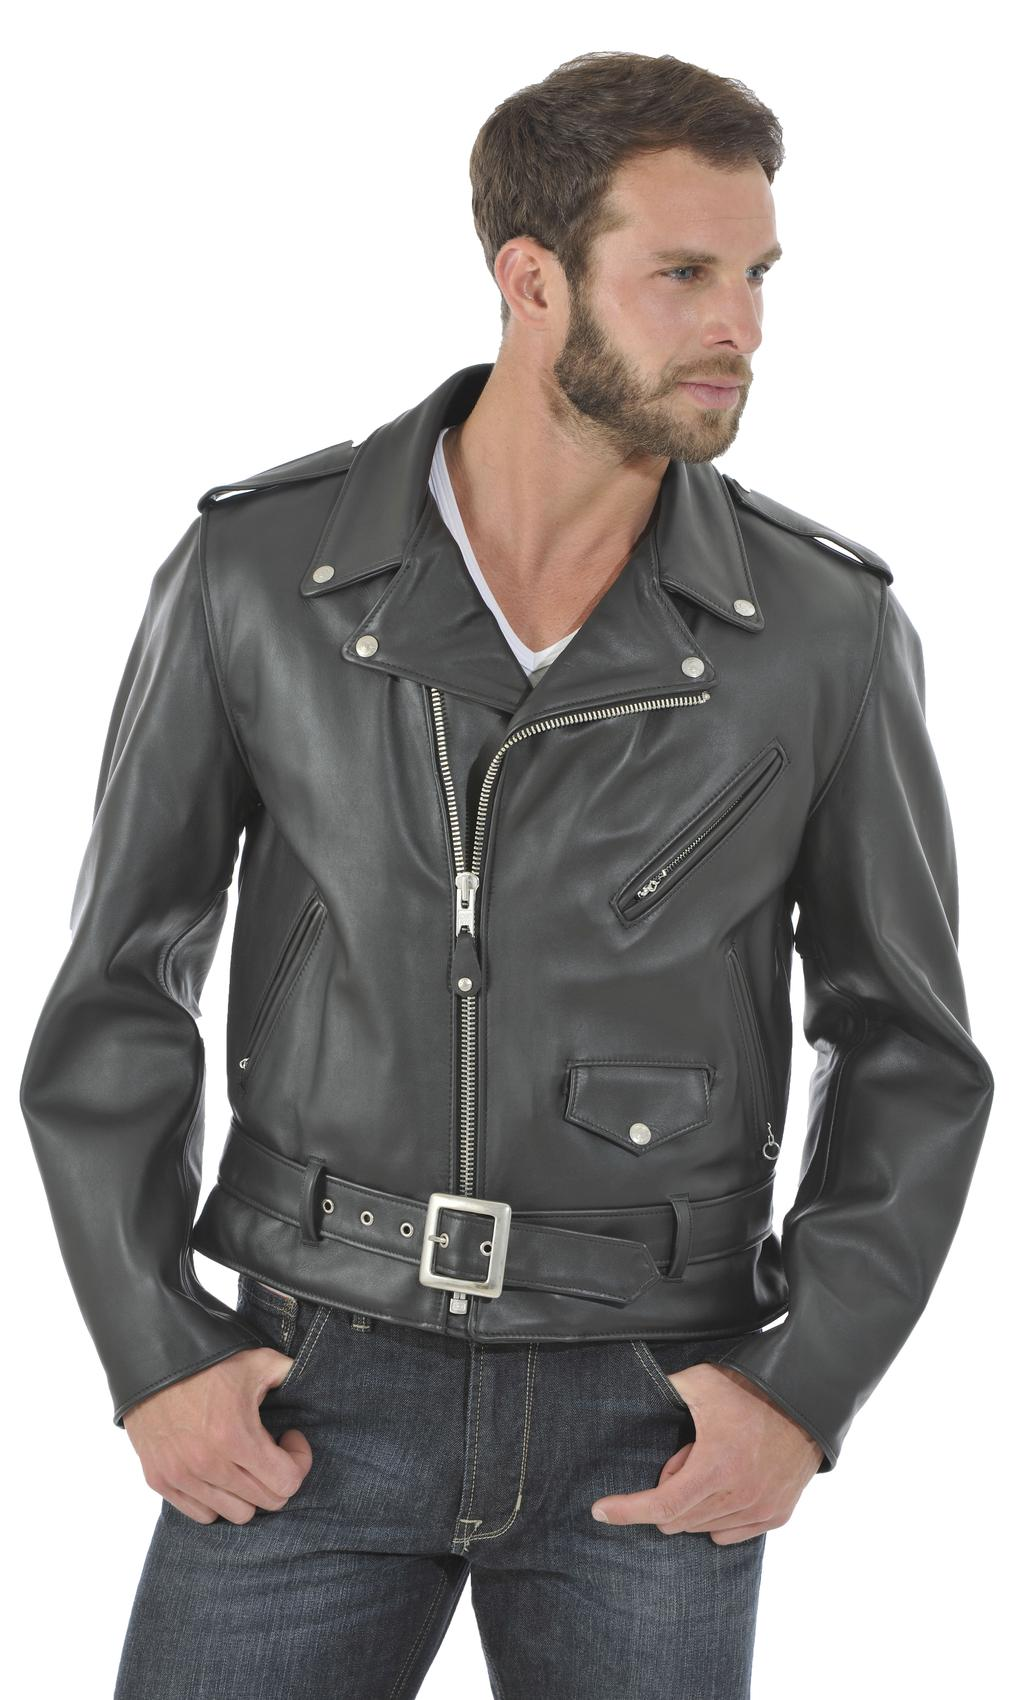 veste et blouson cuir schott flight jacket bombardier 118 schott 184 sm. Black Bedroom Furniture Sets. Home Design Ideas